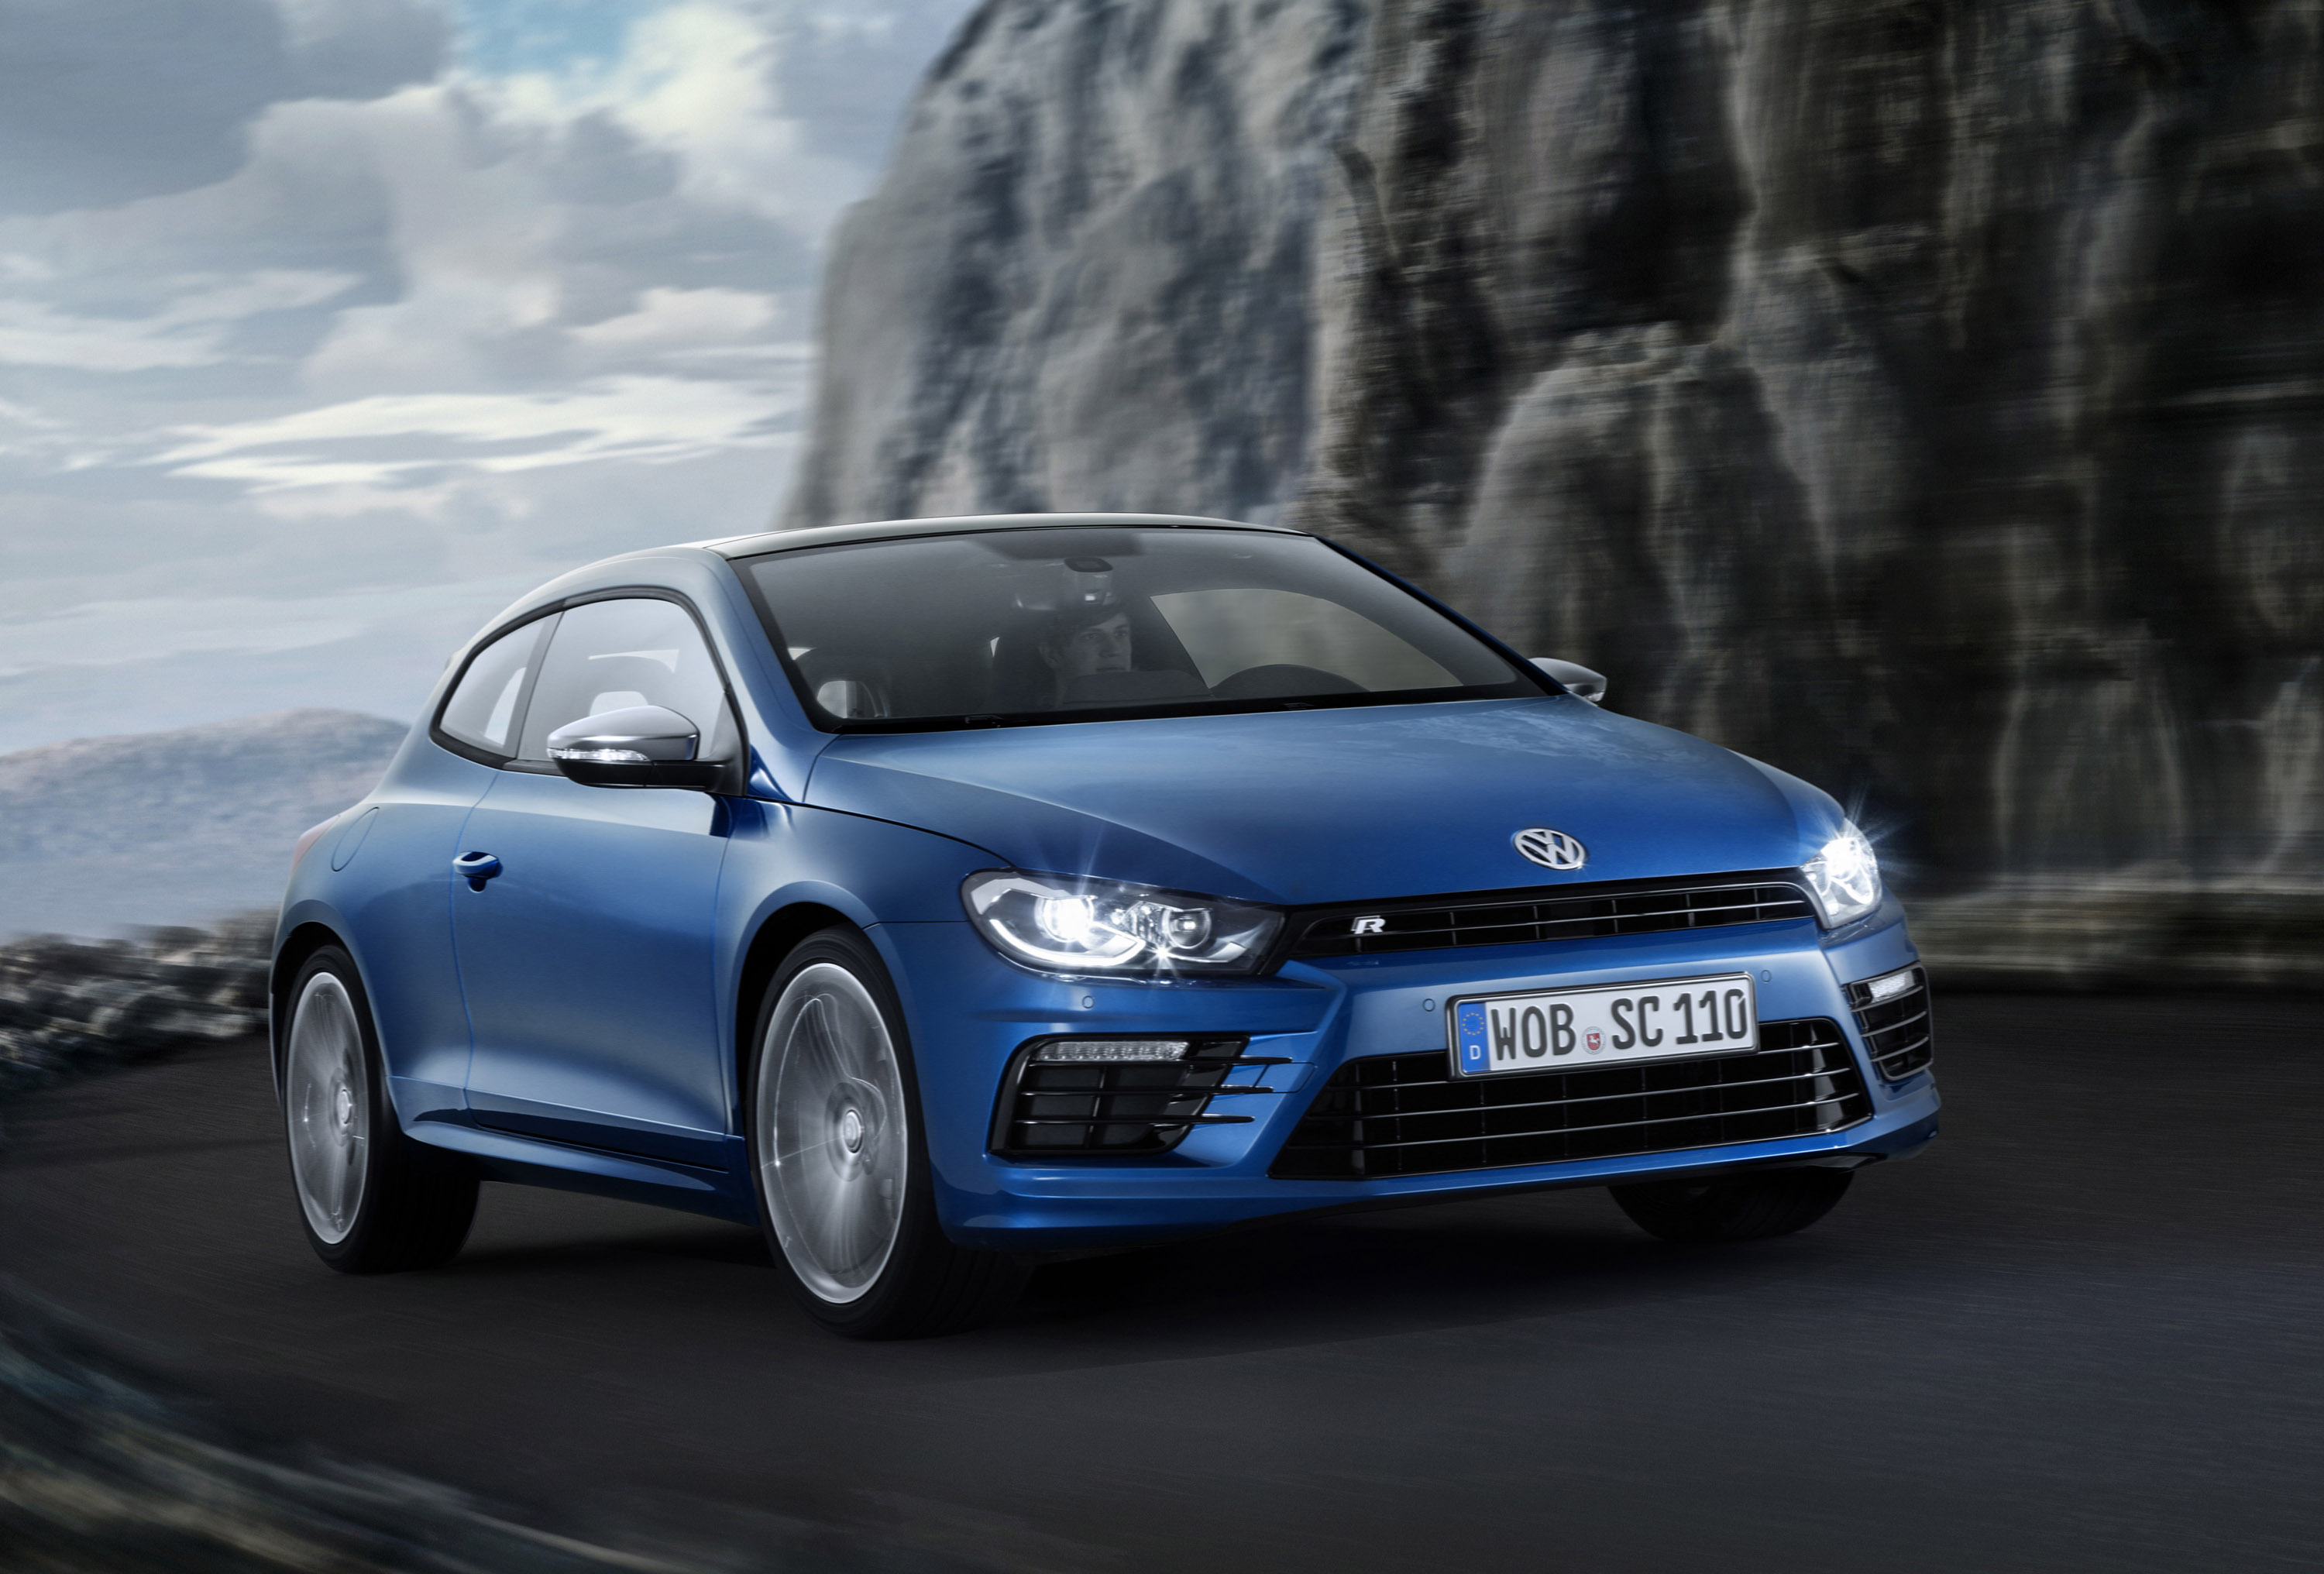 2014 volkswagen scirocco facelift new engines and styling updates. Black Bedroom Furniture Sets. Home Design Ideas